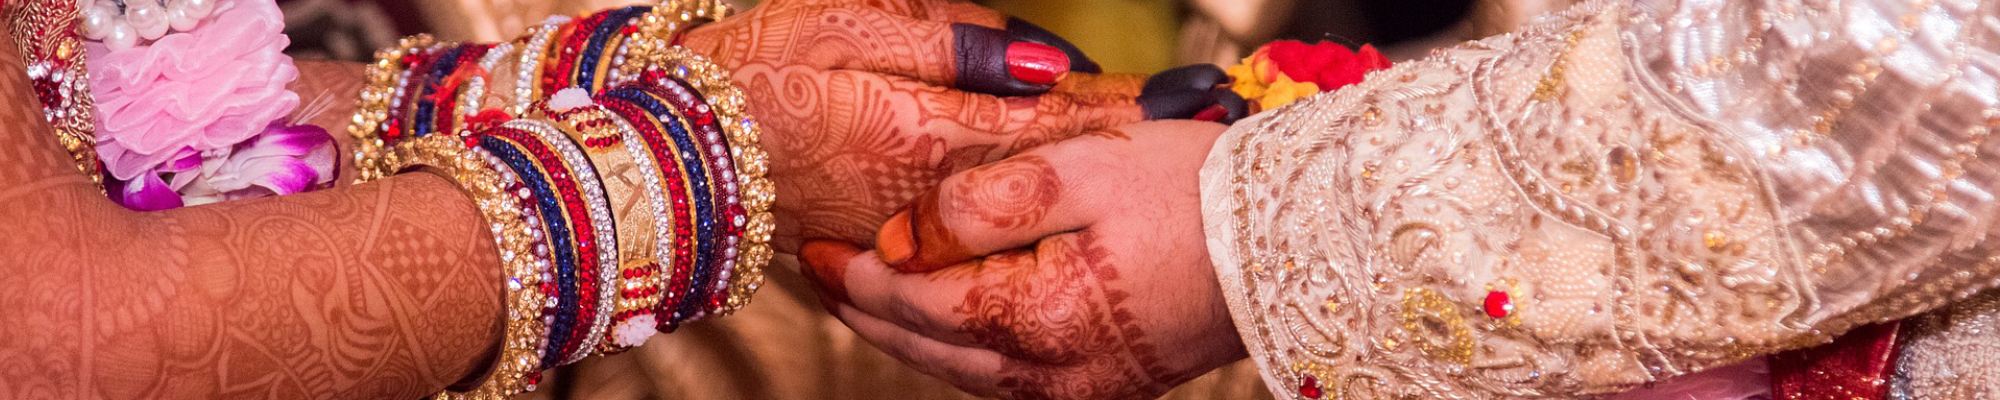 couple holding hands at marriage ceremony in India